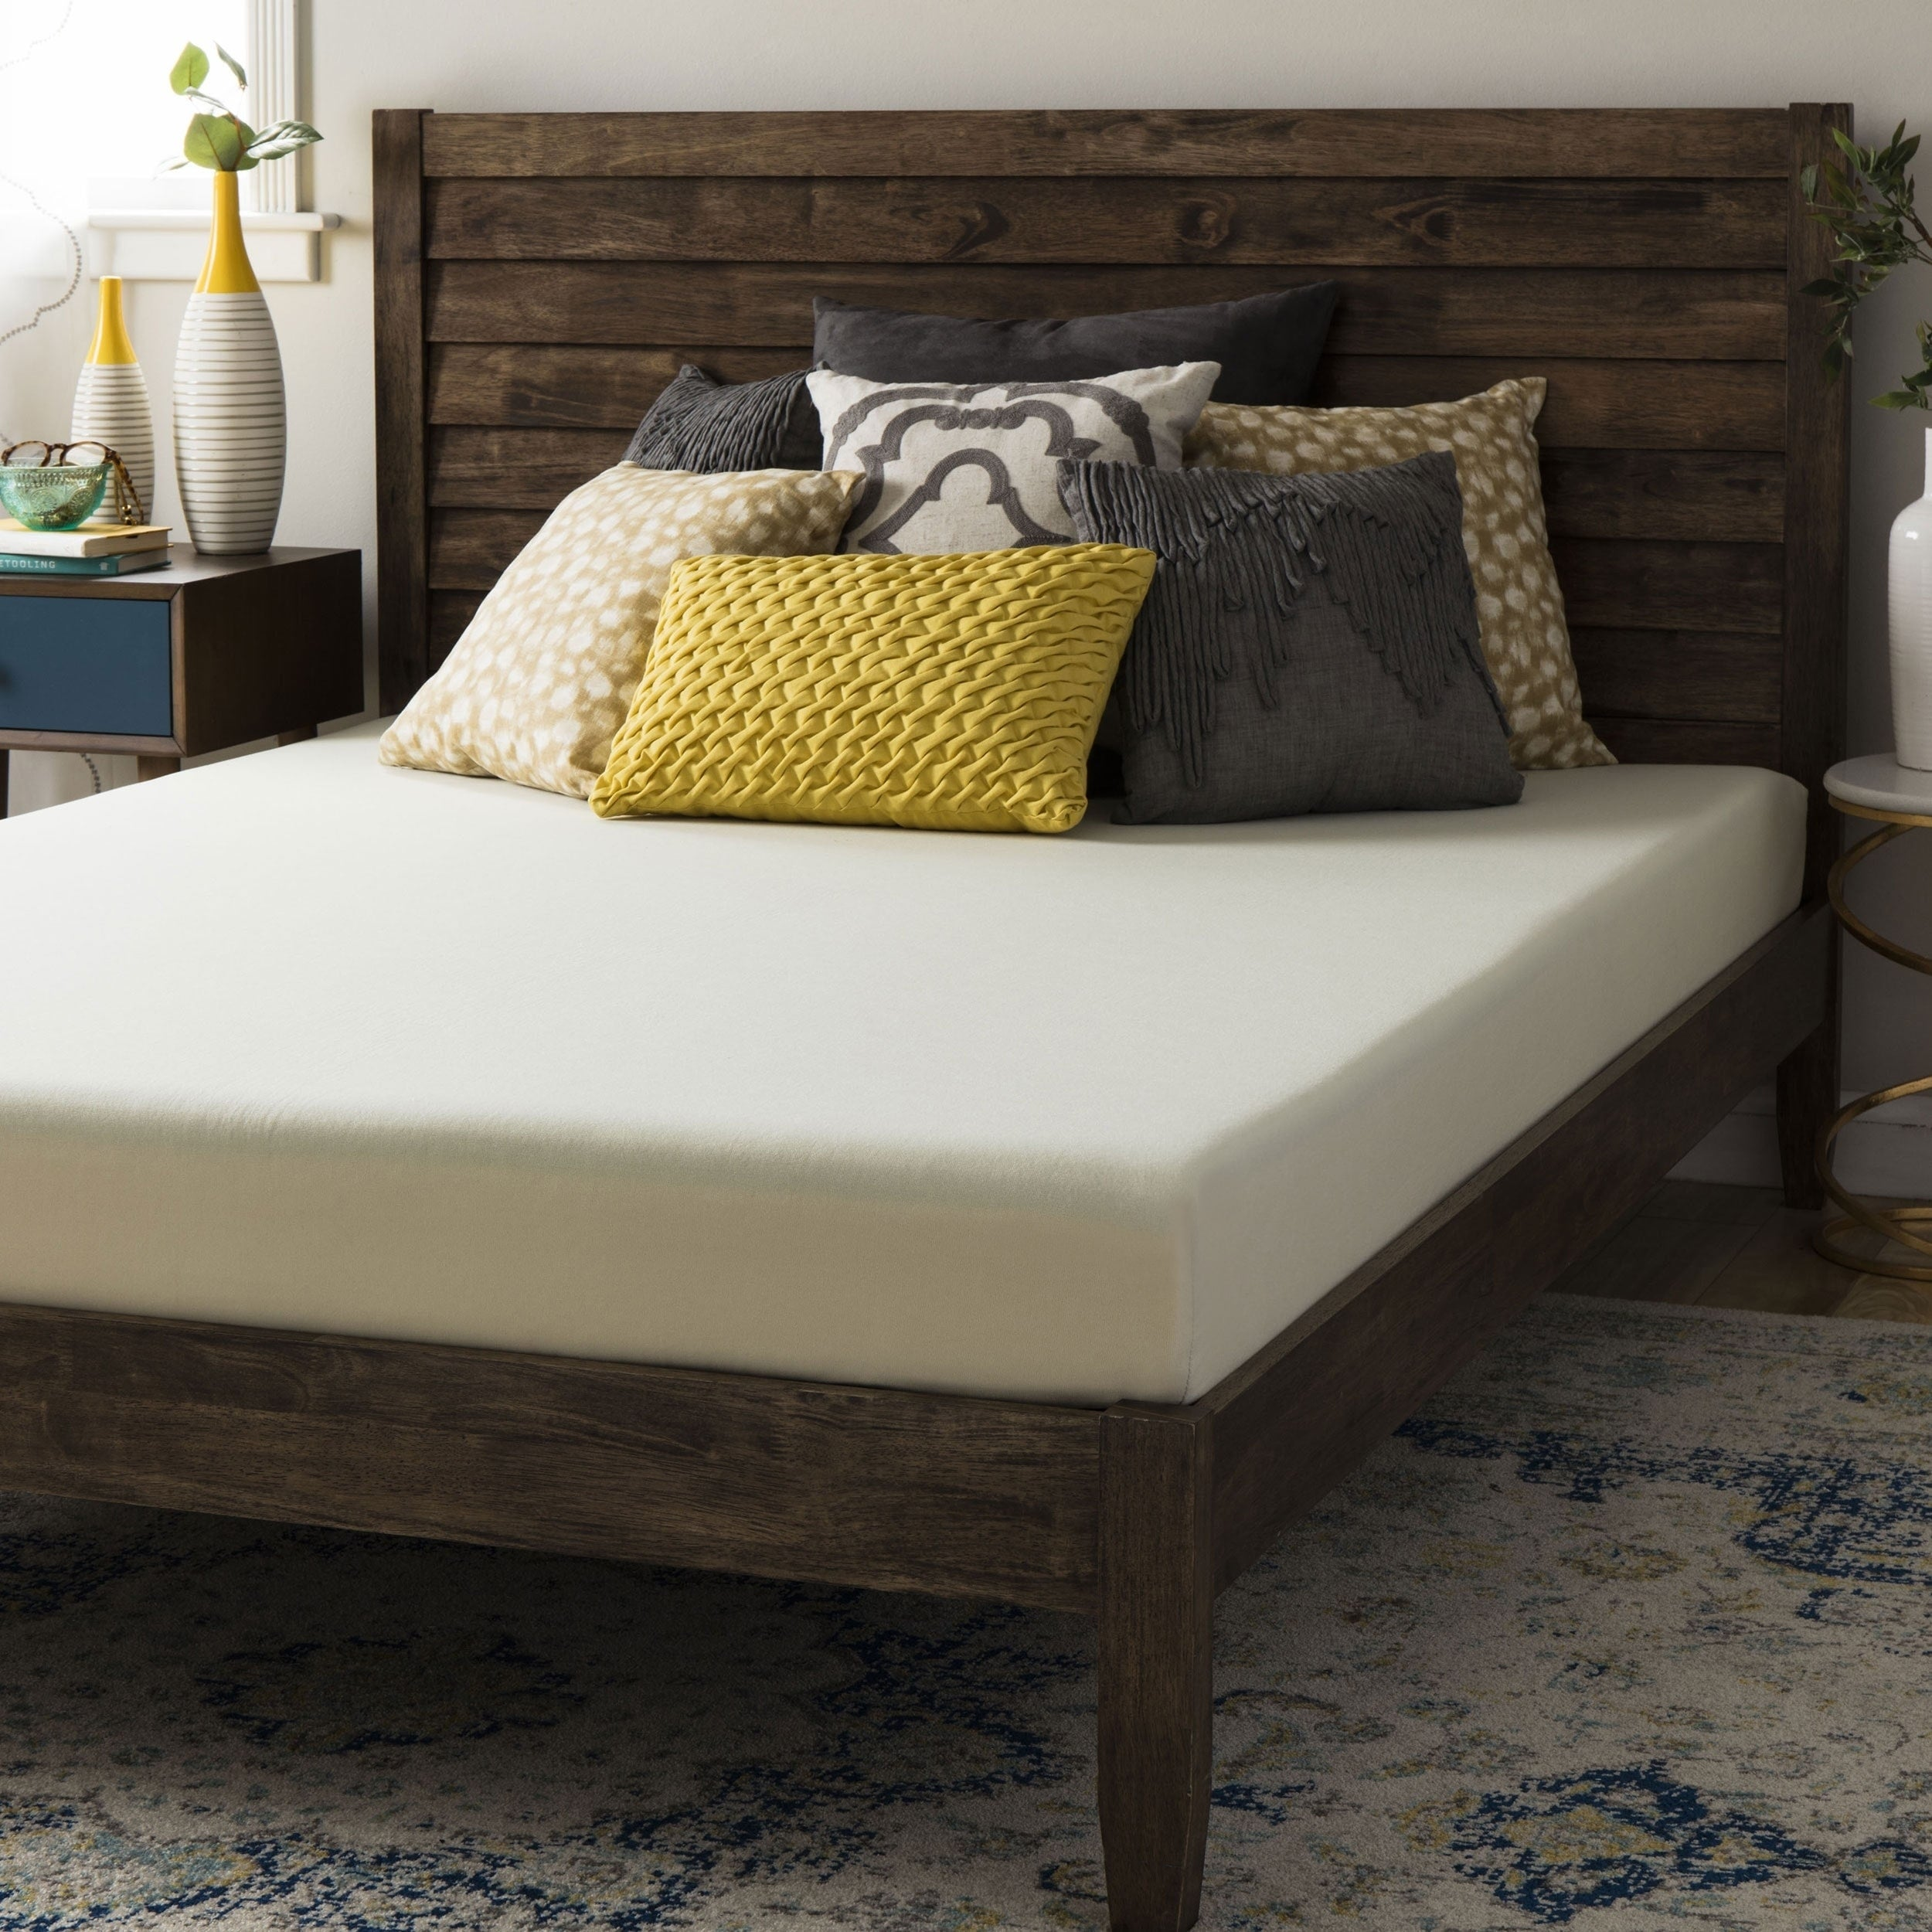 Crown Comfort 6-inch Queen-size Memory Foam Mattress (Que...